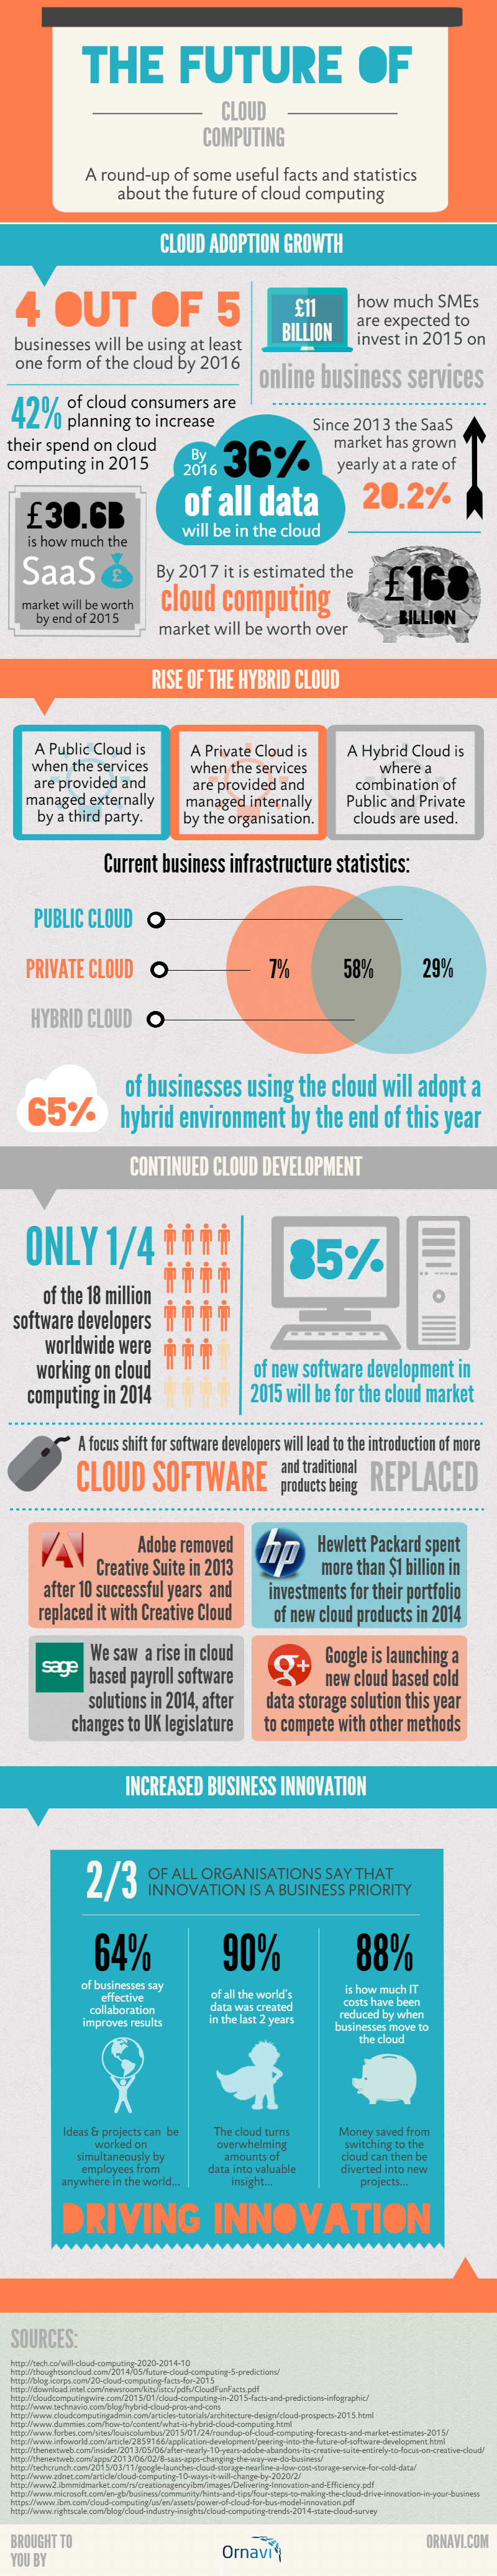 The Future of the Cloud